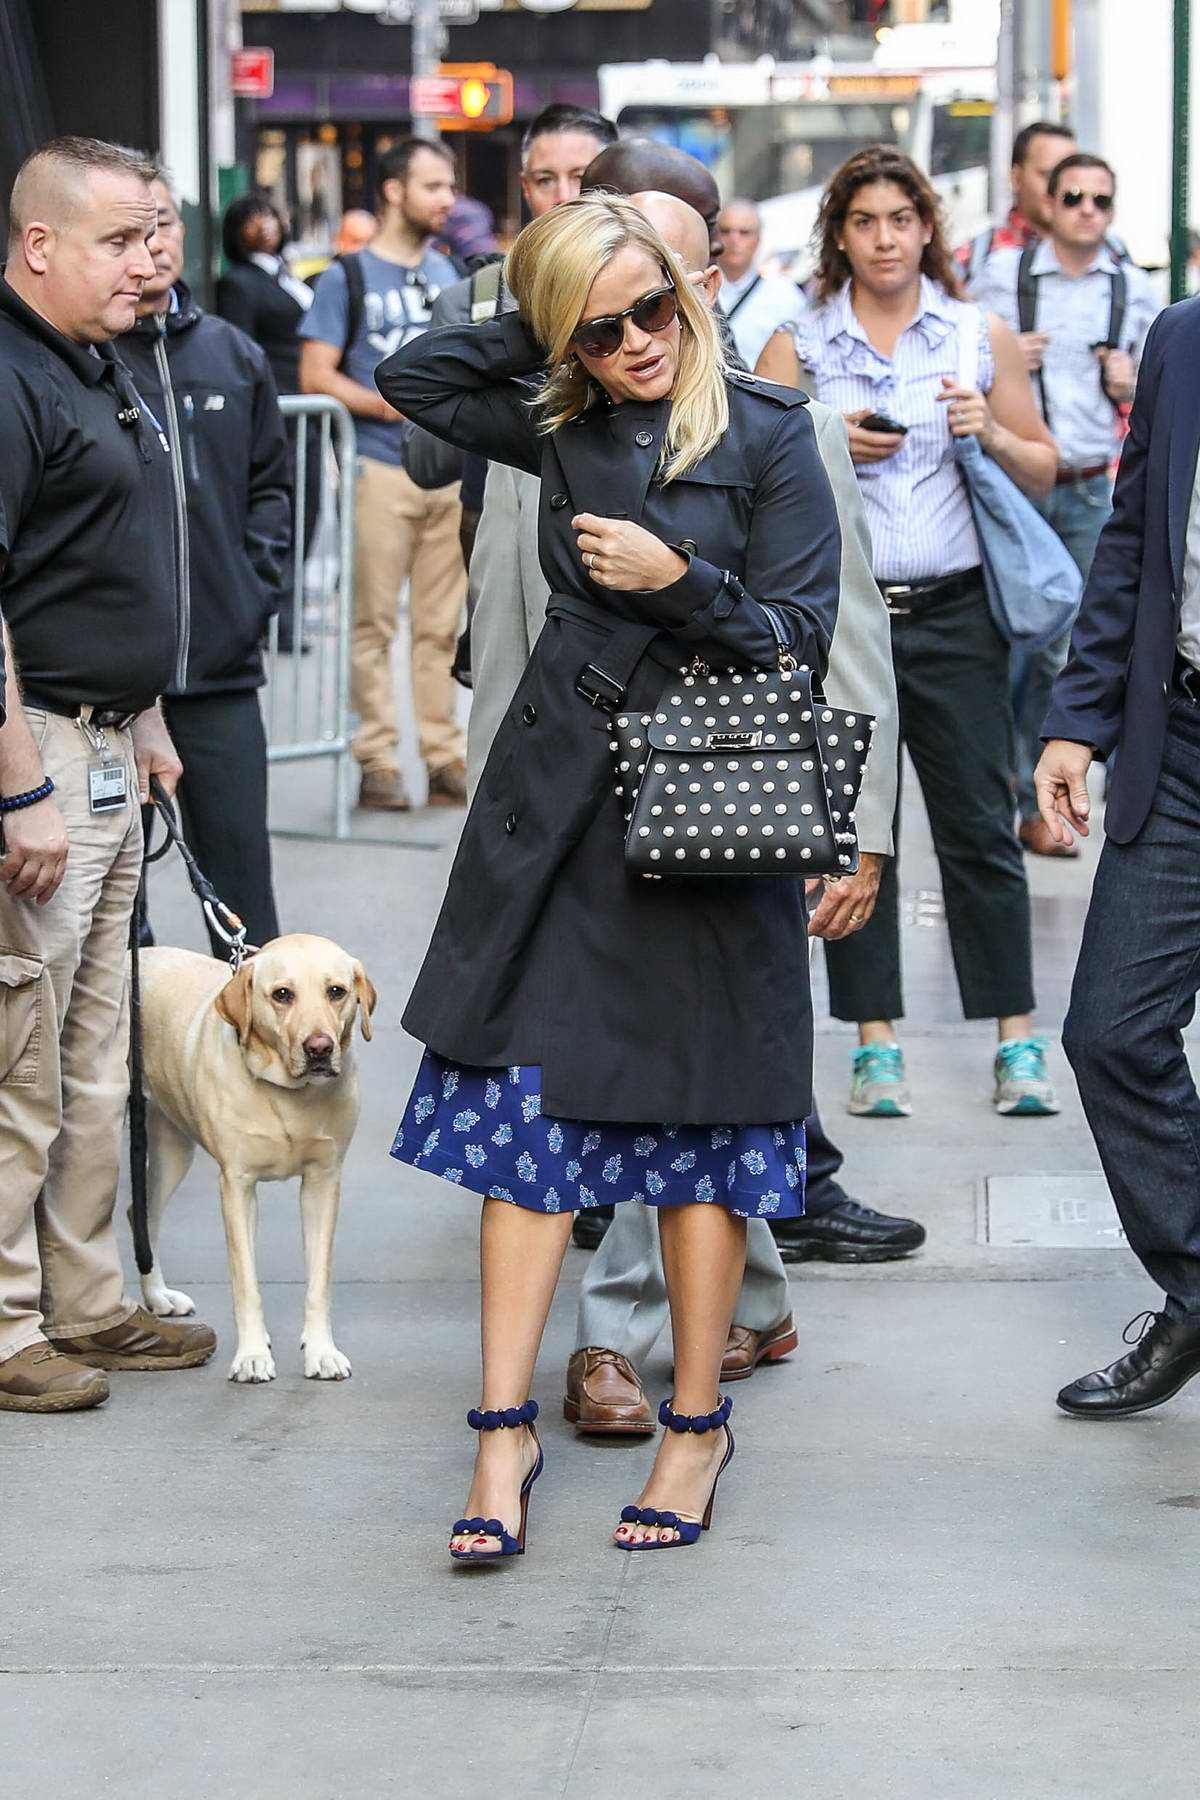 Reese Witherspoon spotted arriving for a TV show in the Times Square Area of New York